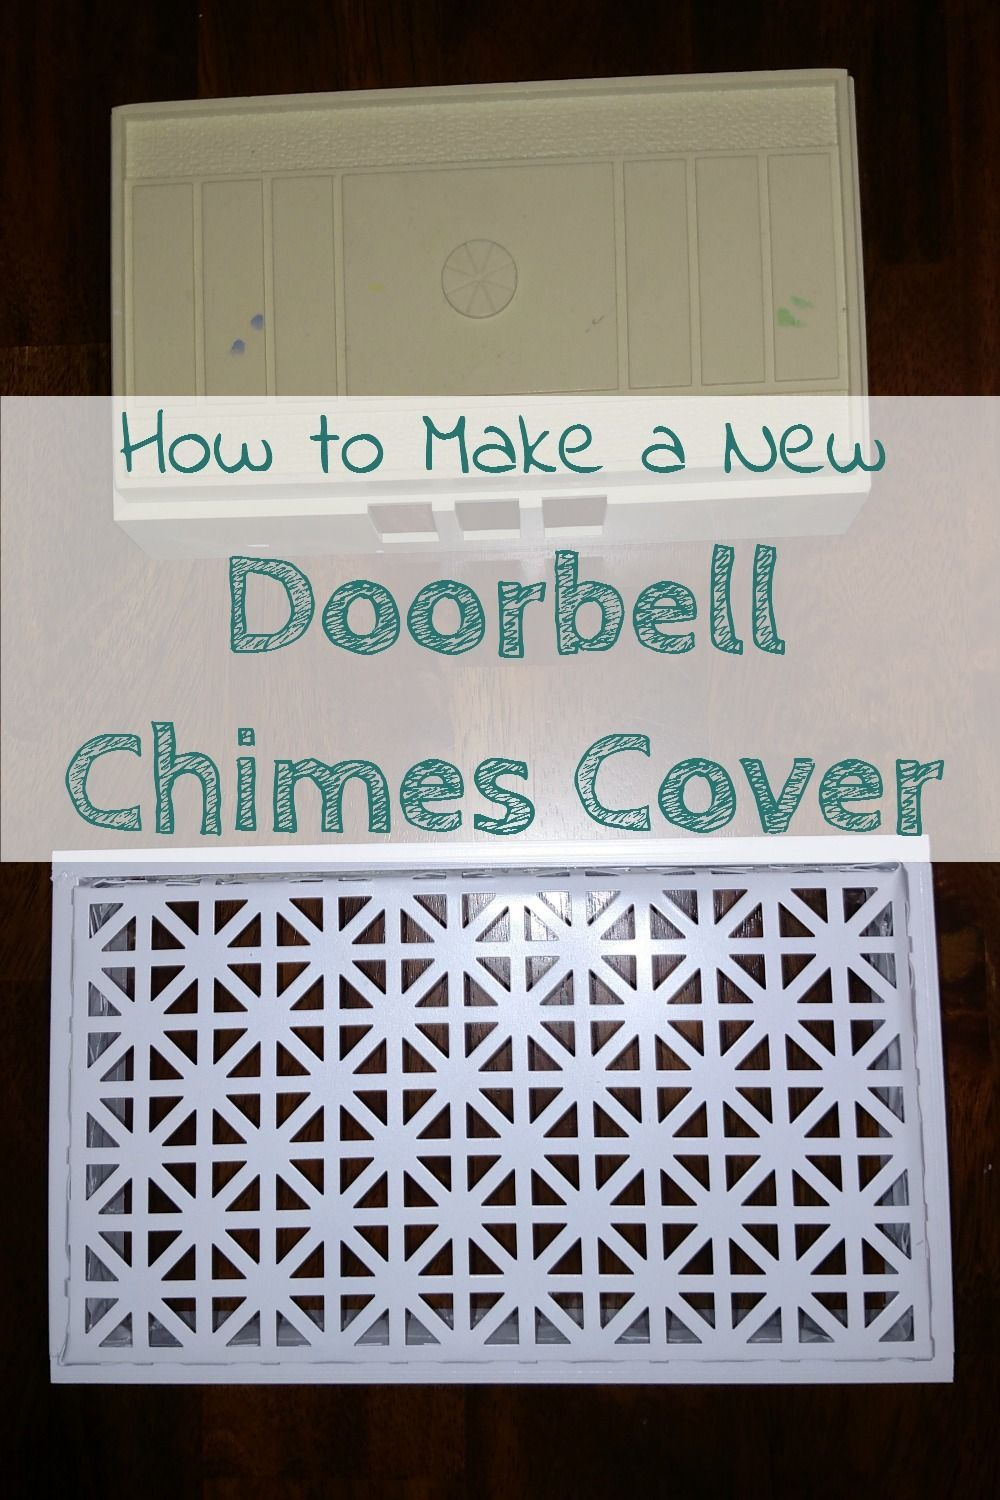 Ordinaire Doorbell Chimes Can Be Such An Eye Sore, Especially Outdated Ones, Make A  New Cover!